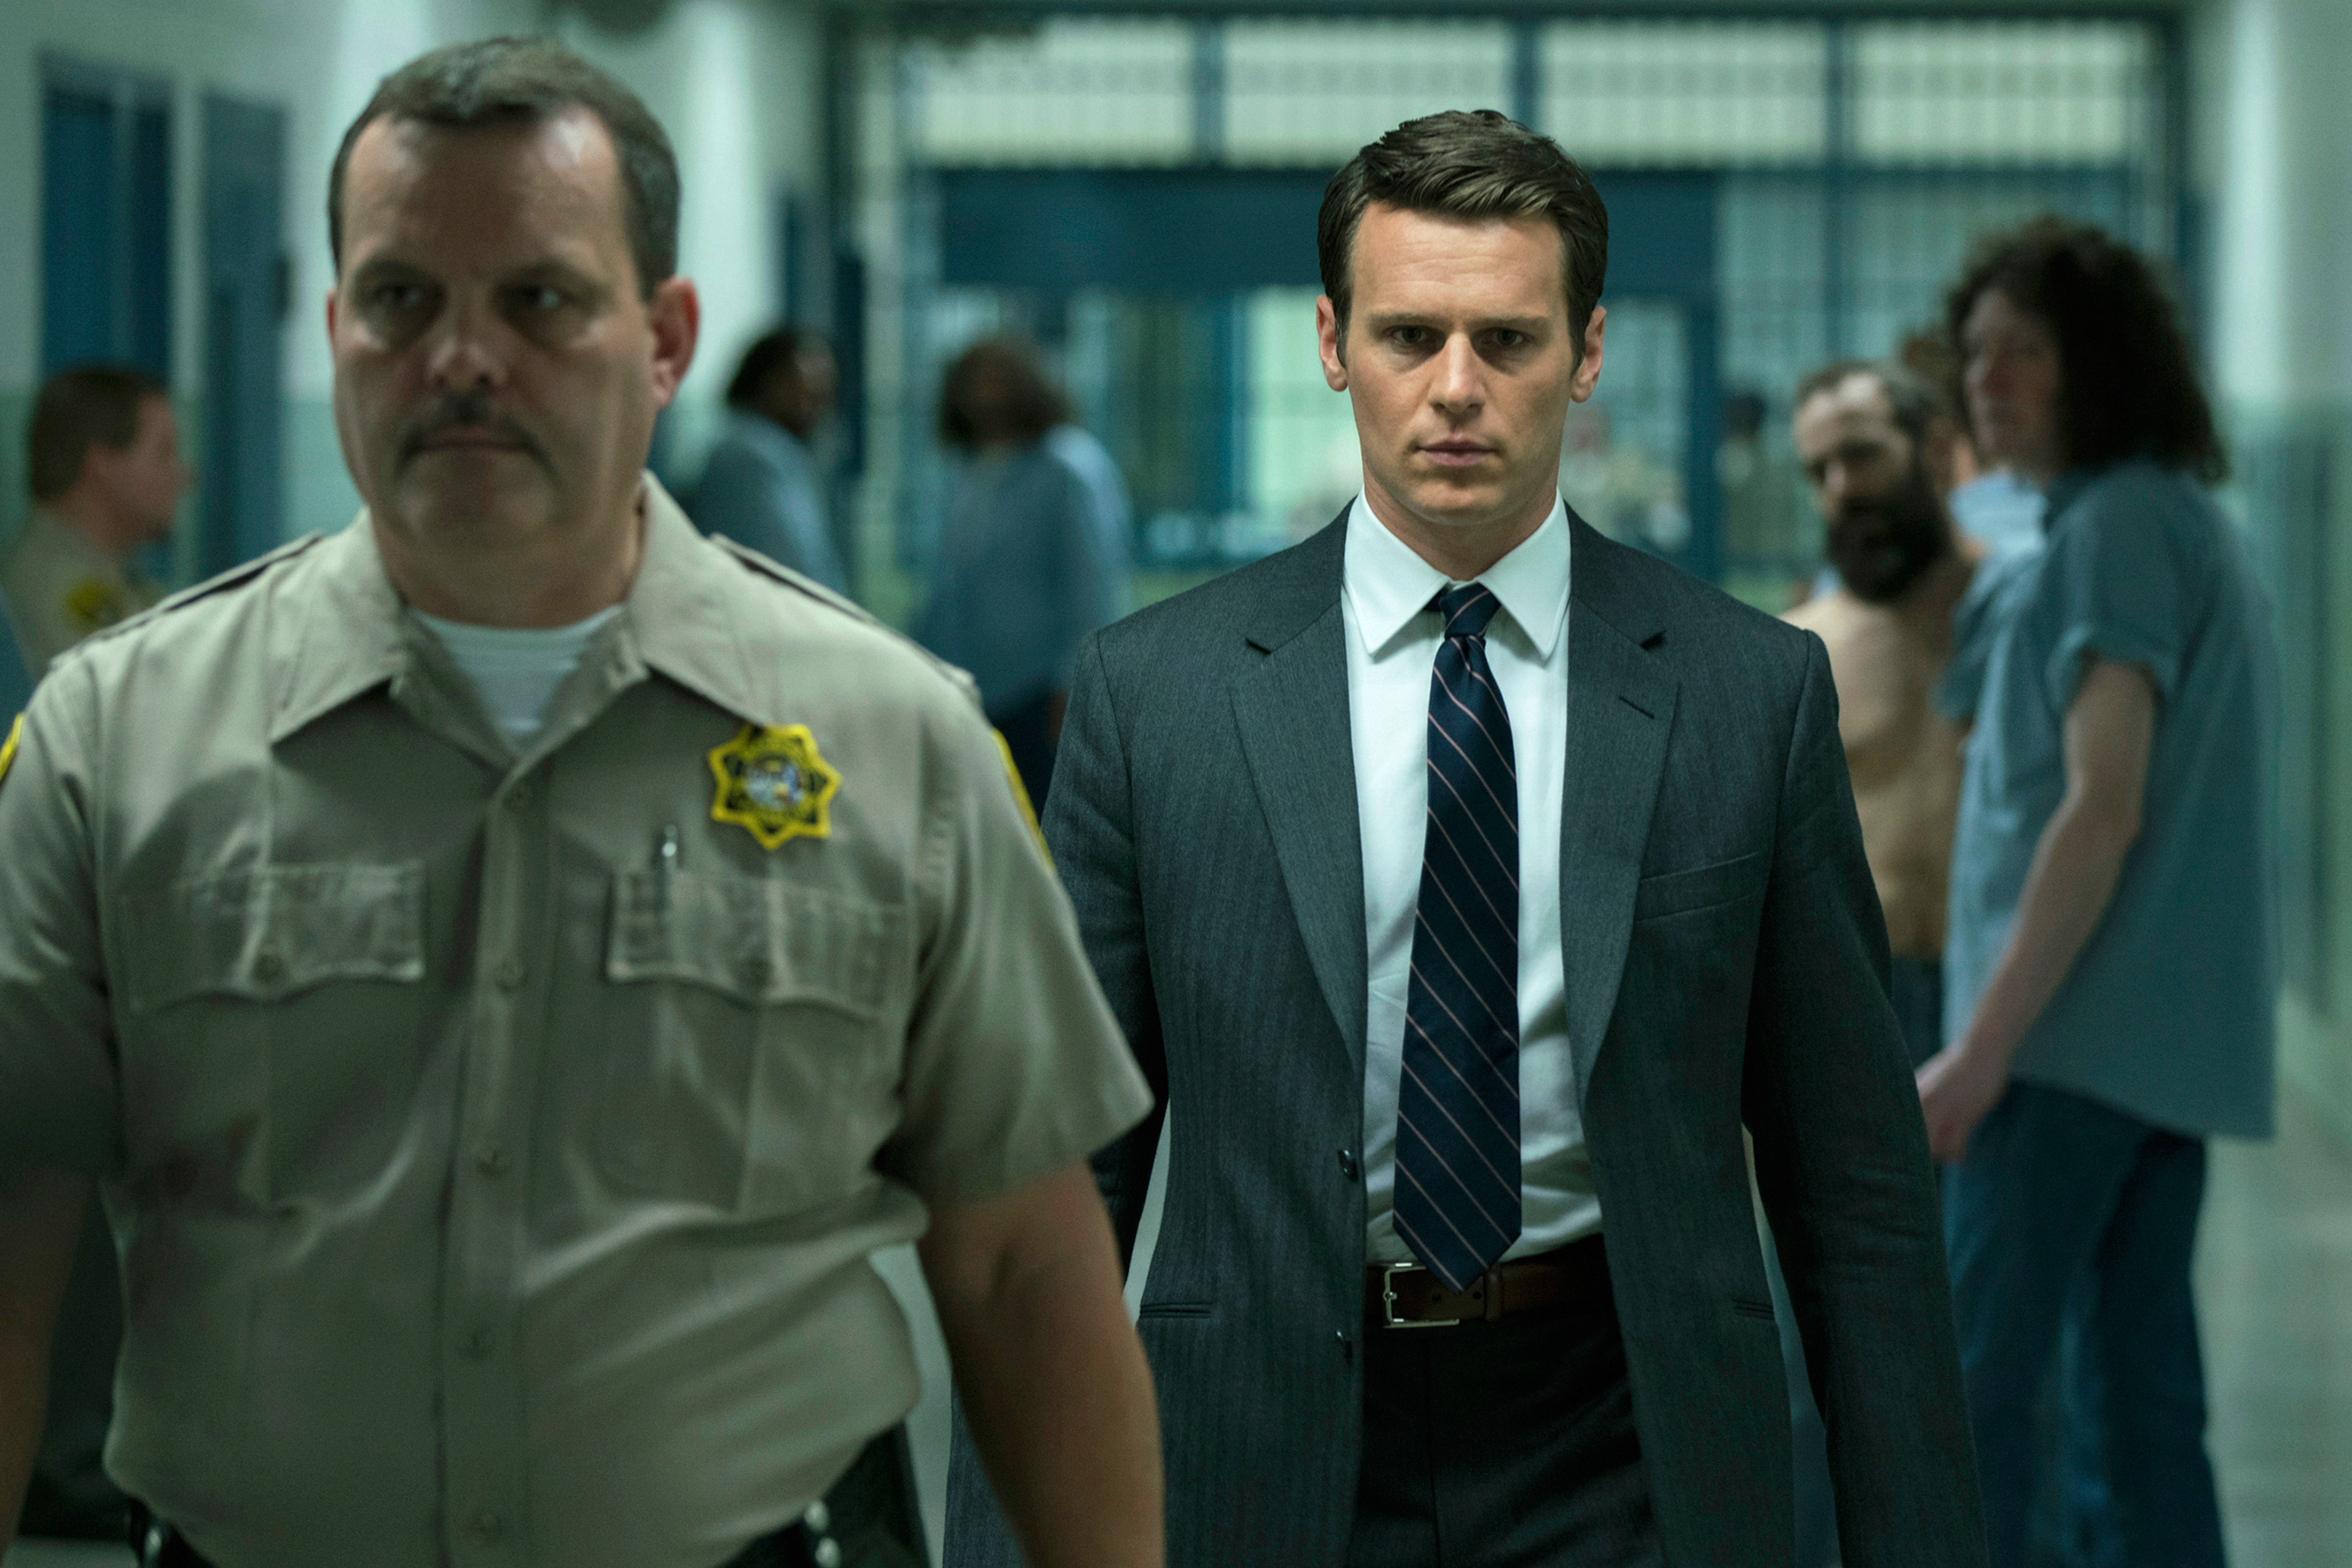 049_mindhunter_102_unit_11766r4